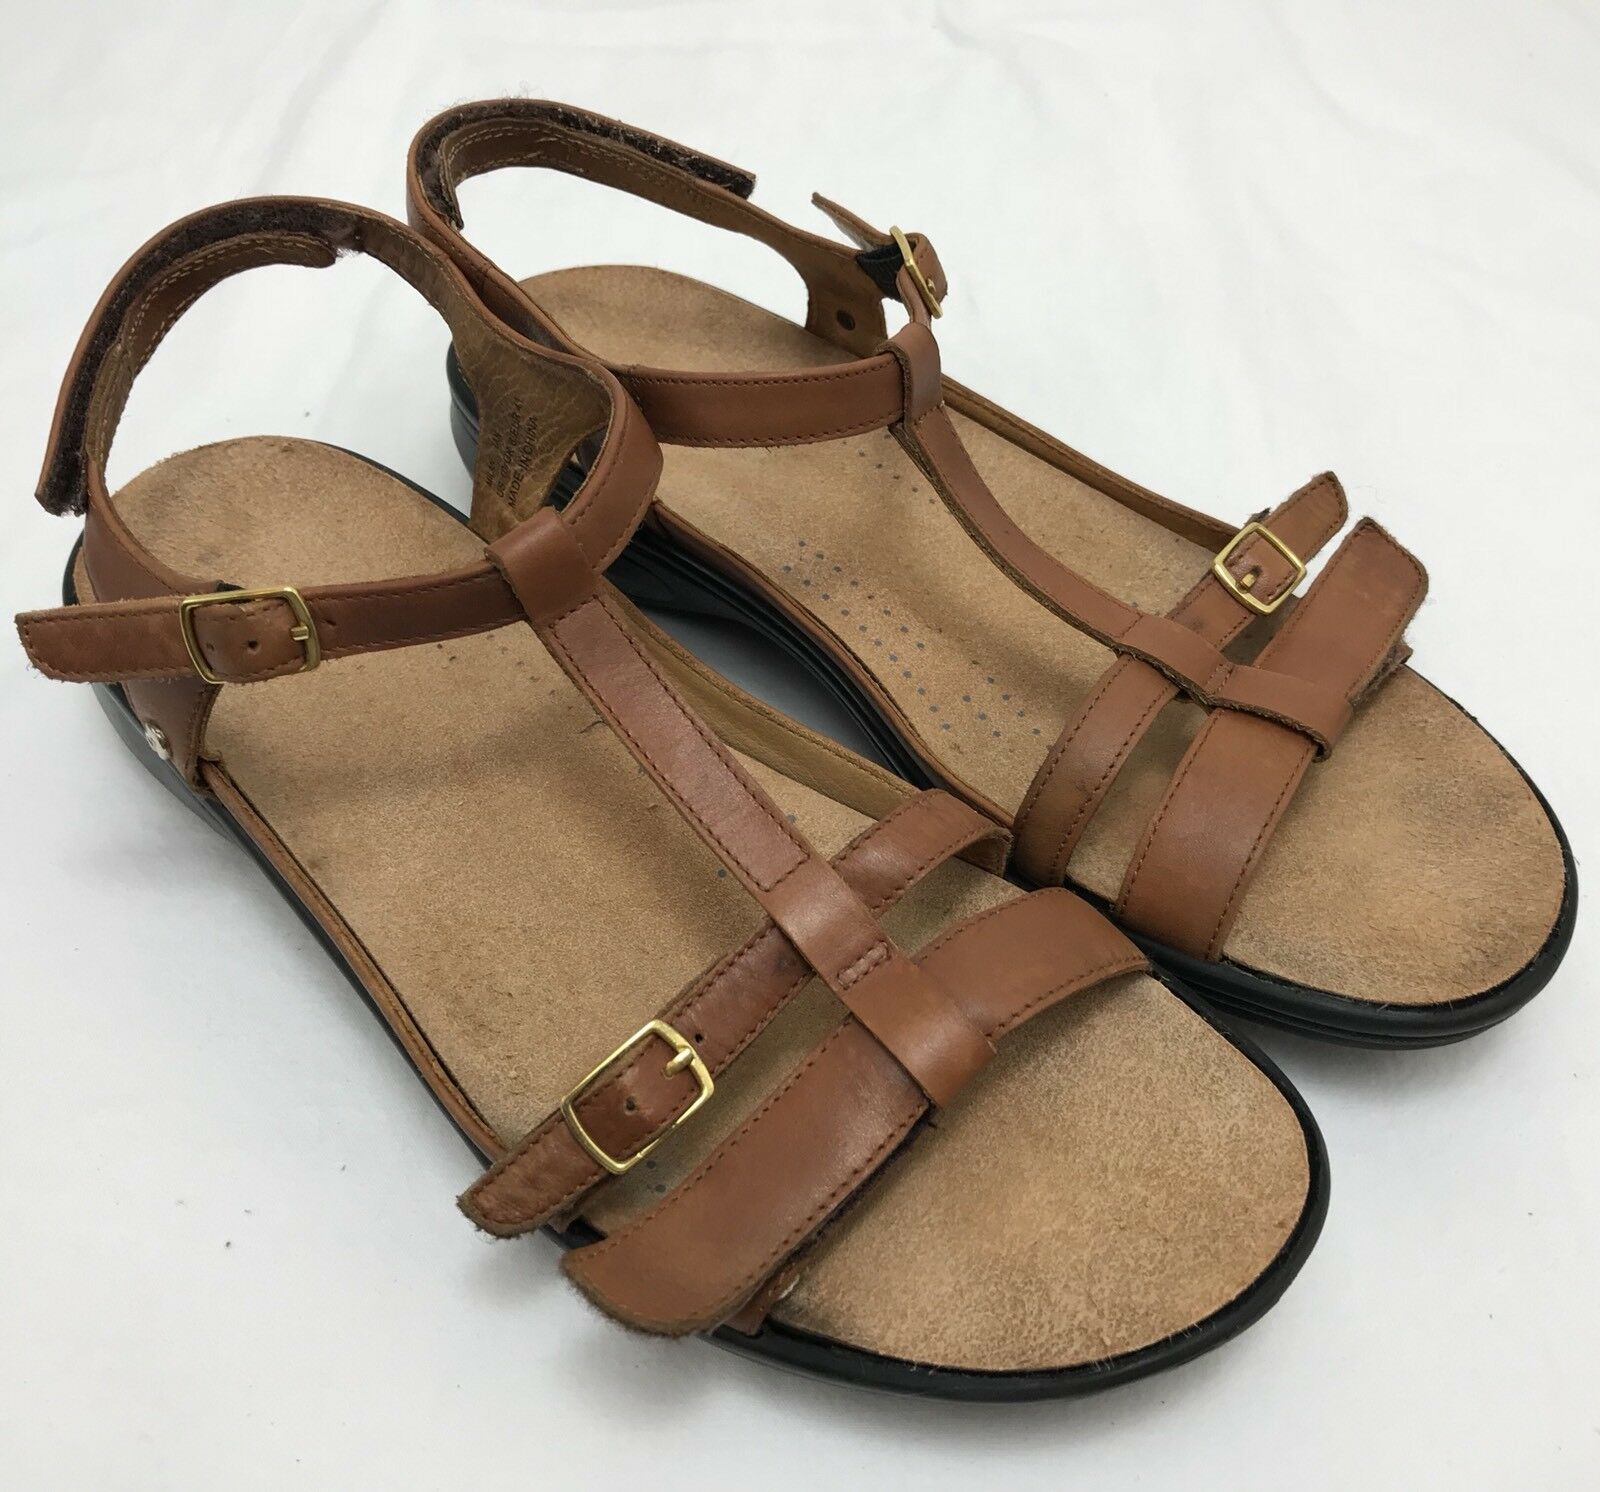 Womens REVERE 'Milan' Brown-Tan Leather Ankle Strap Sandals SIZE 41 US 10 (UK 8)